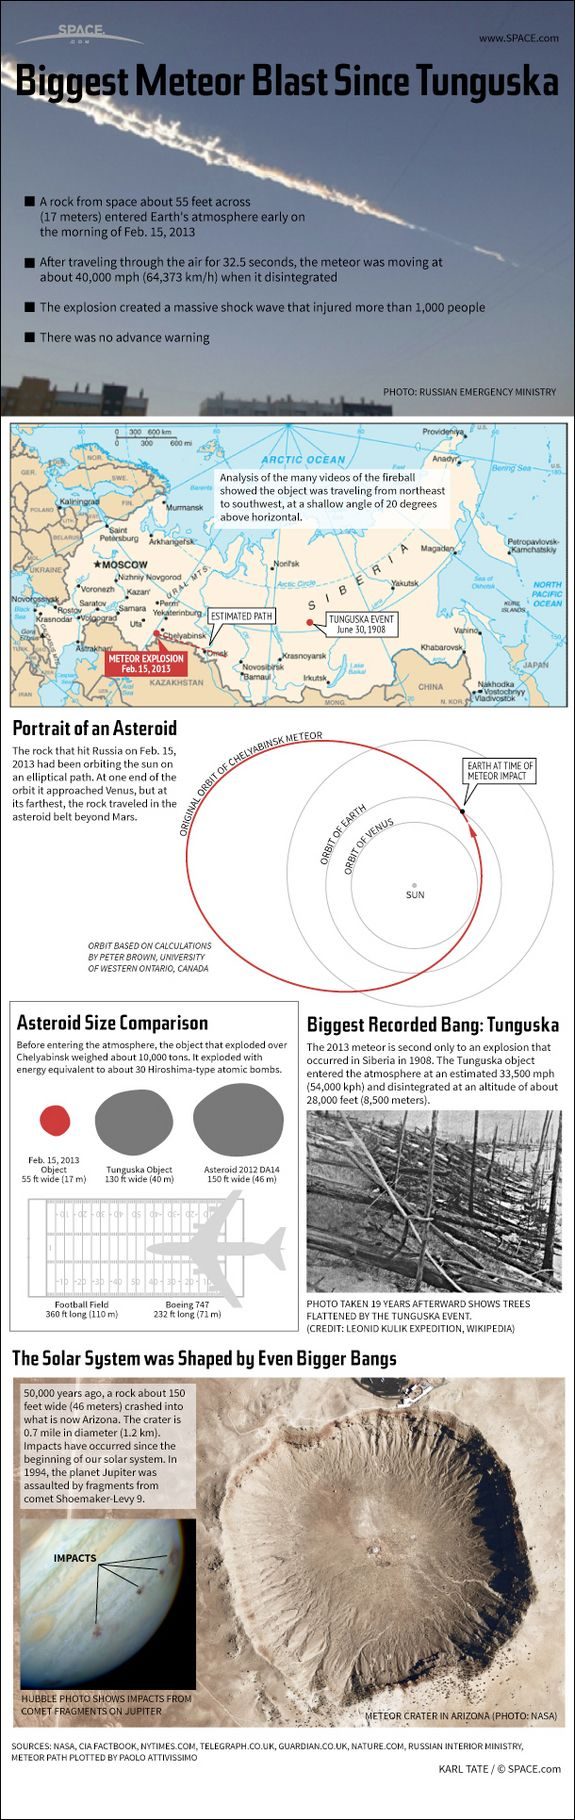 Earth at Higher Risk of Asteroid Impact, Russian Meteor Explosion Reveals | LiveScience